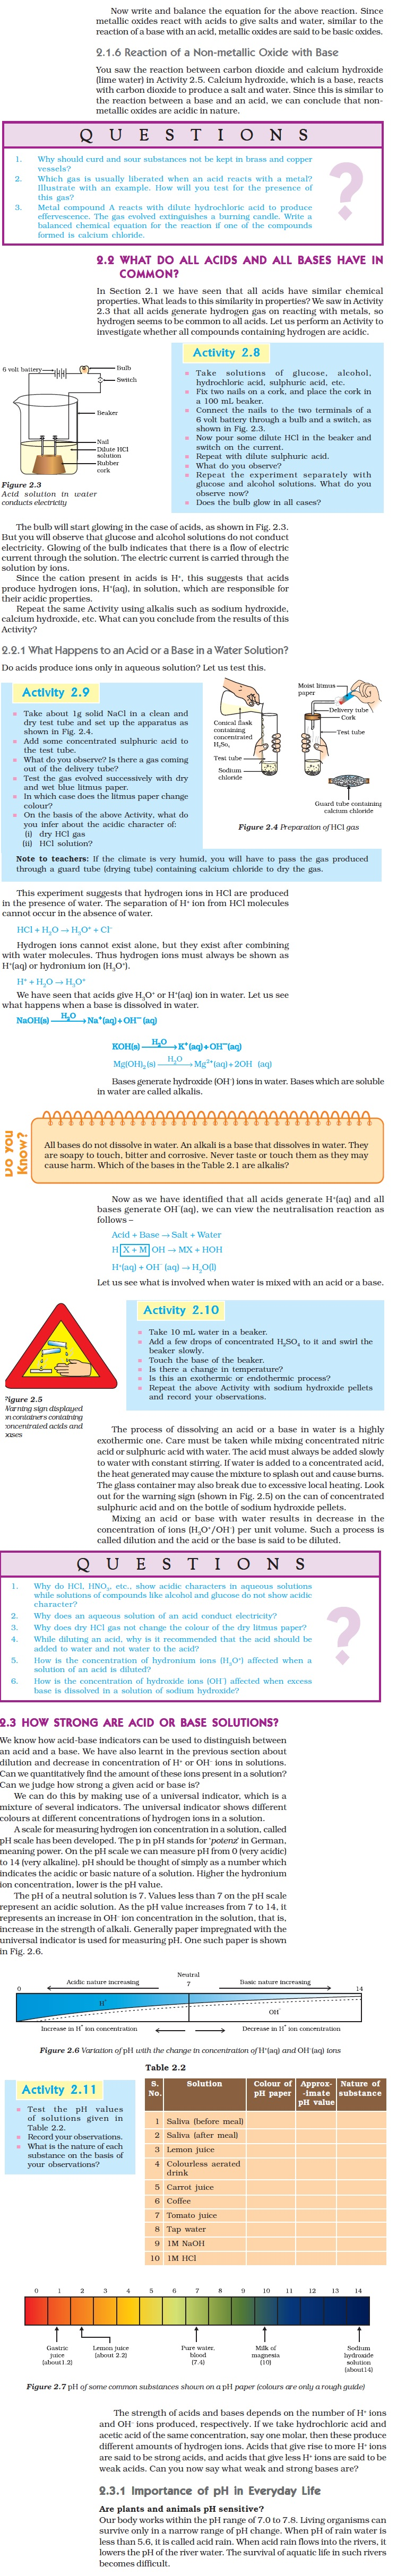 NCERT Class X Science Chapter 2 - Acids, Bases and Salts